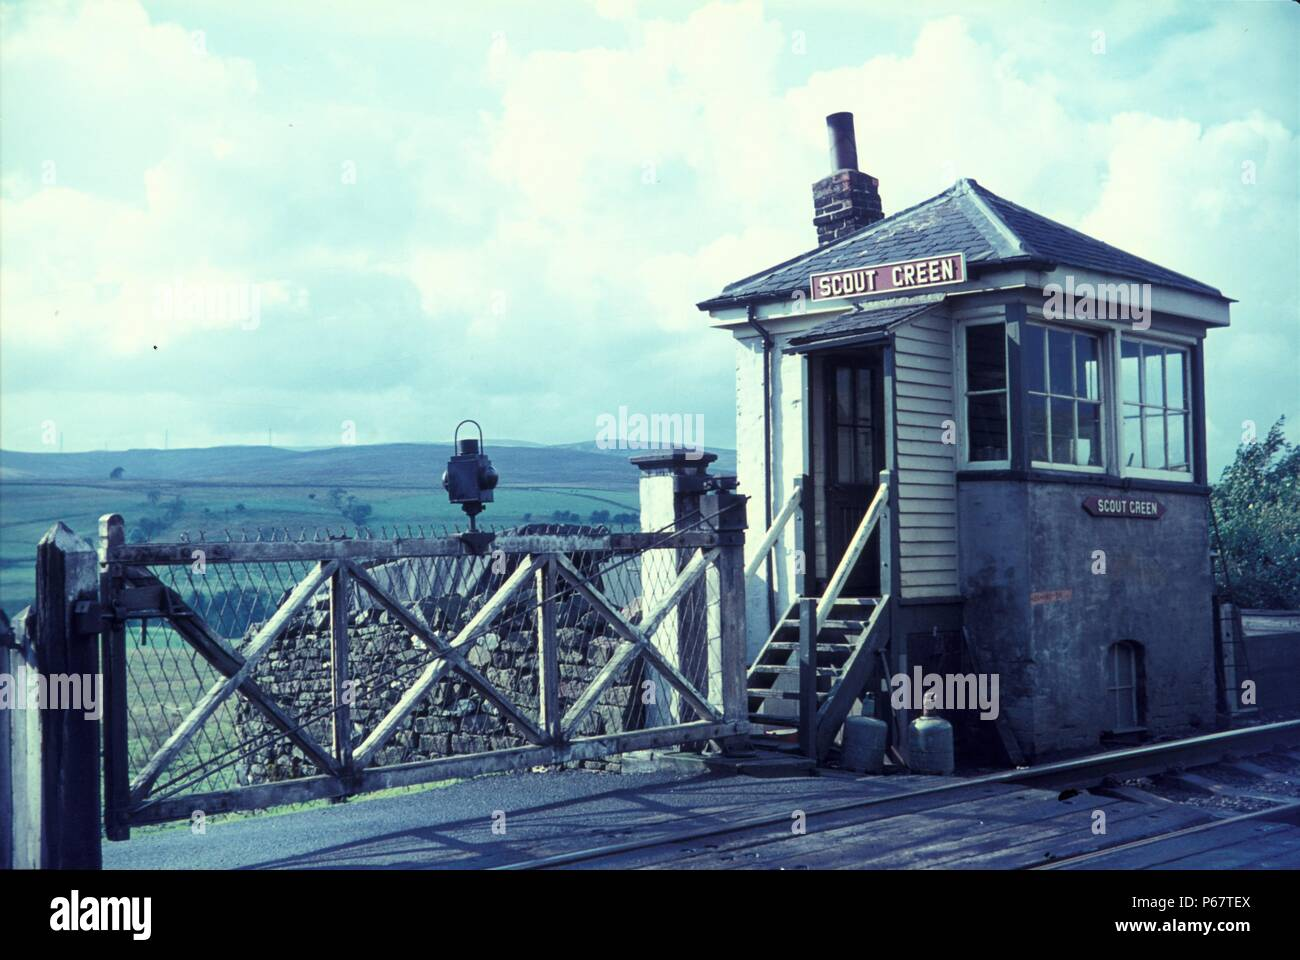 Scout Green crossing on the legendary Shap Bank in Cumbria at the close of the steam age in Britain. 1967. - Stock Image